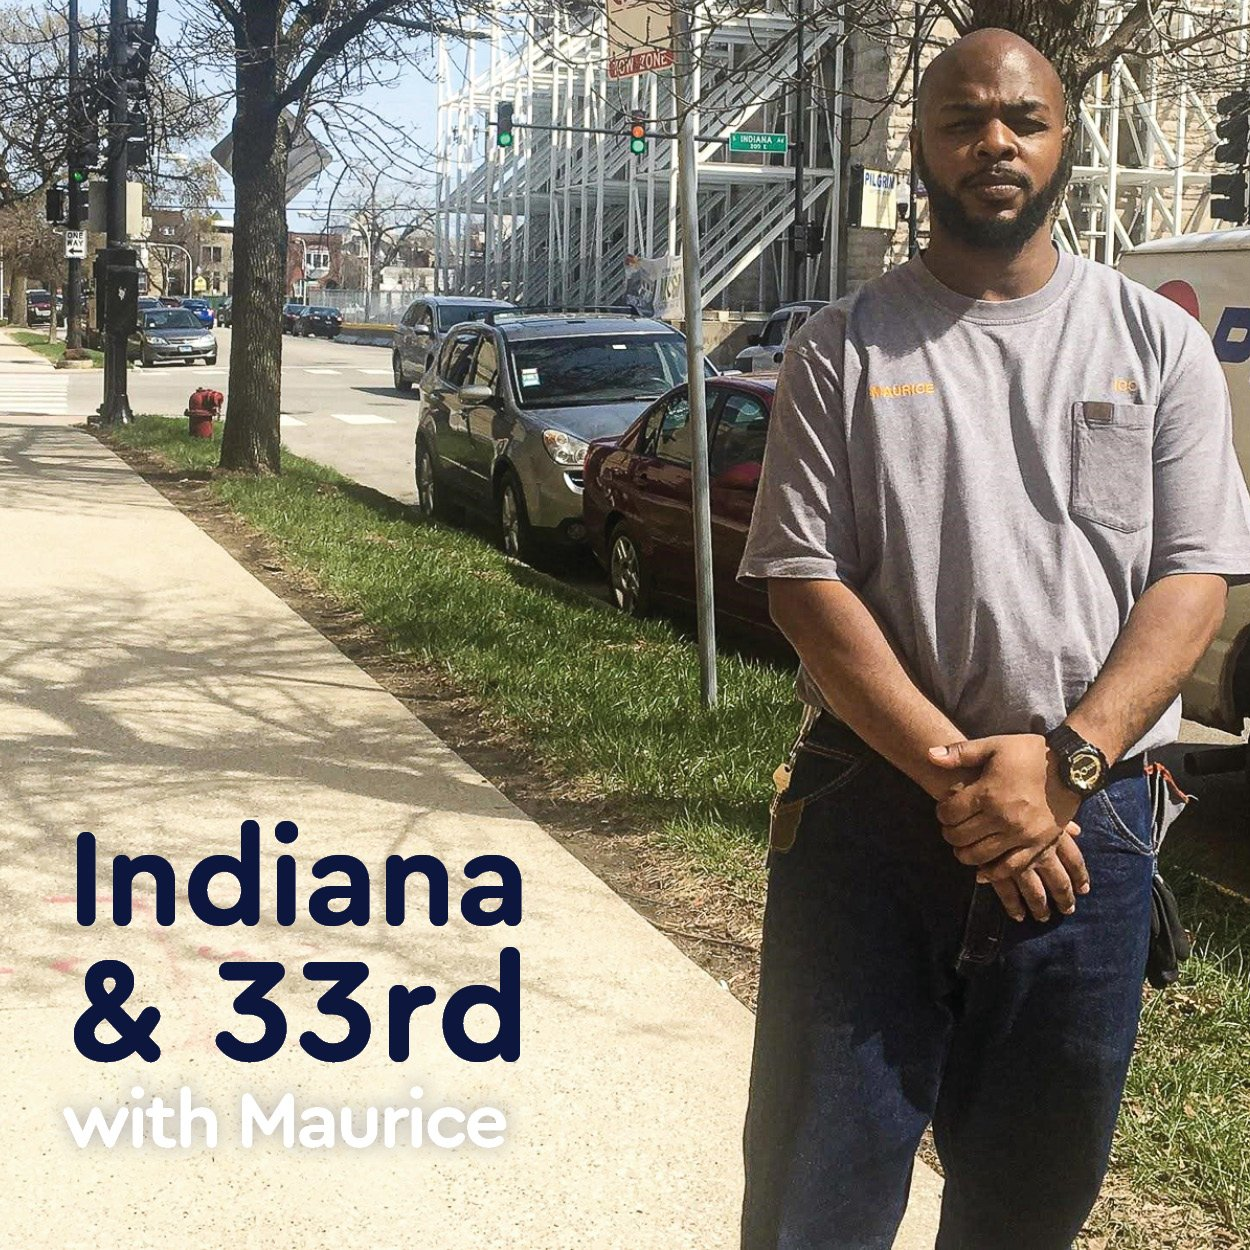 Maurice at Indiana & 33rd